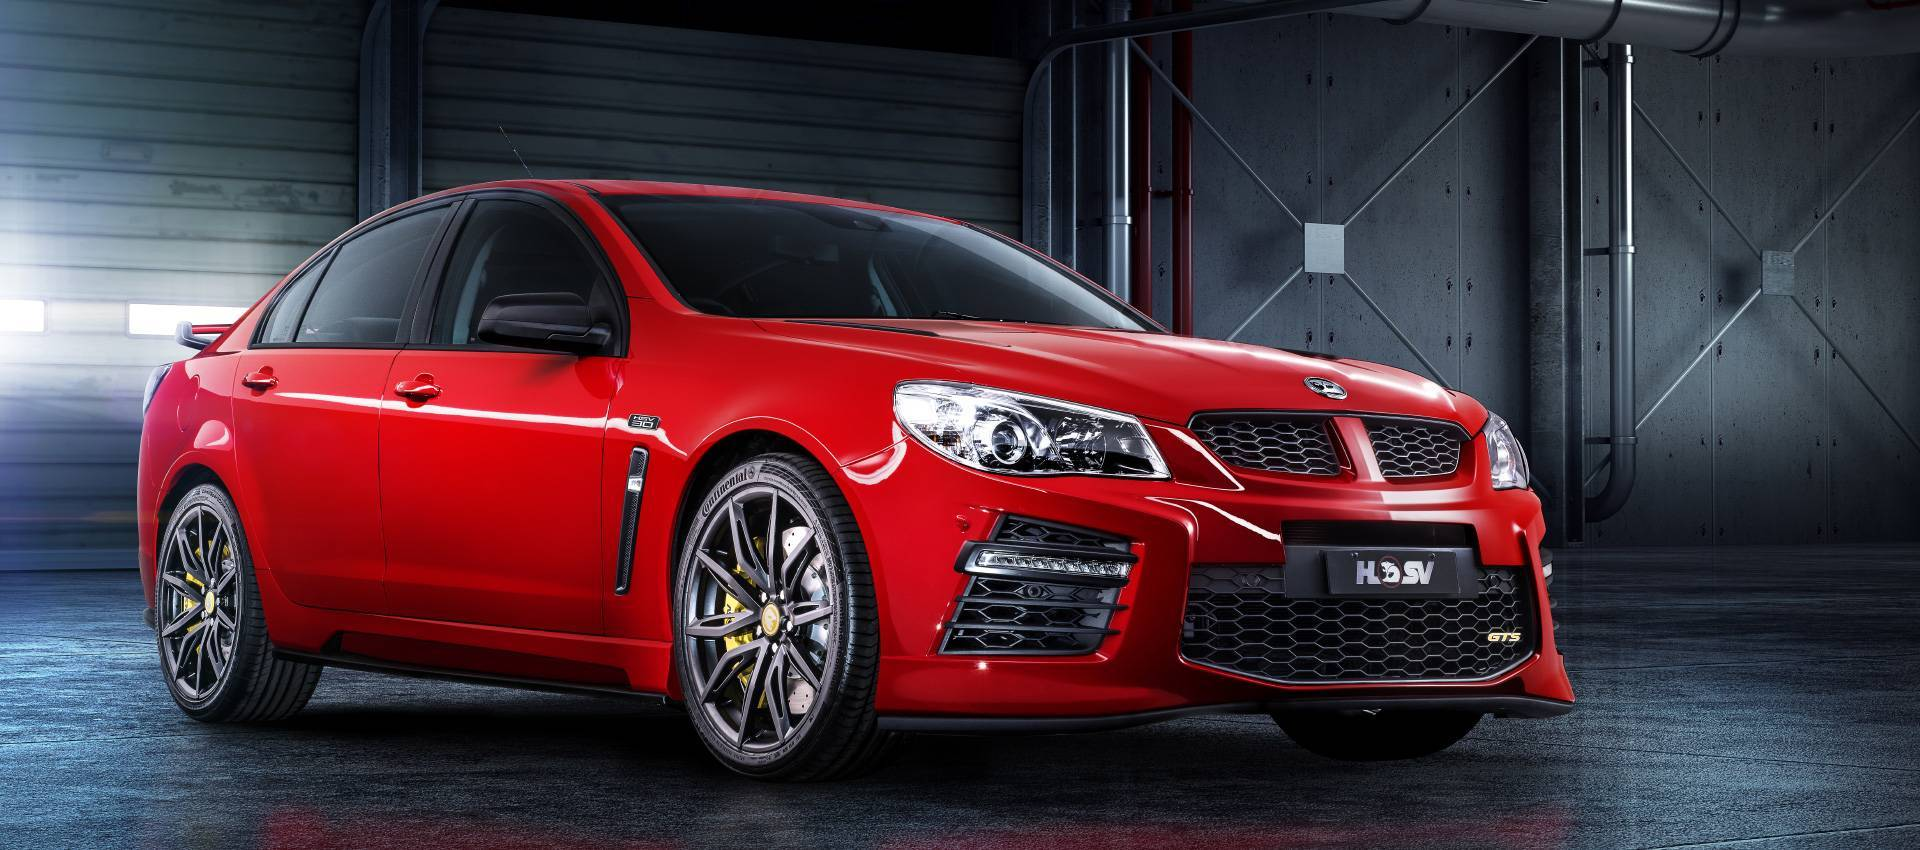 Booran Holden HSV stocks one of the last Australian made V8 thoroughbreds.